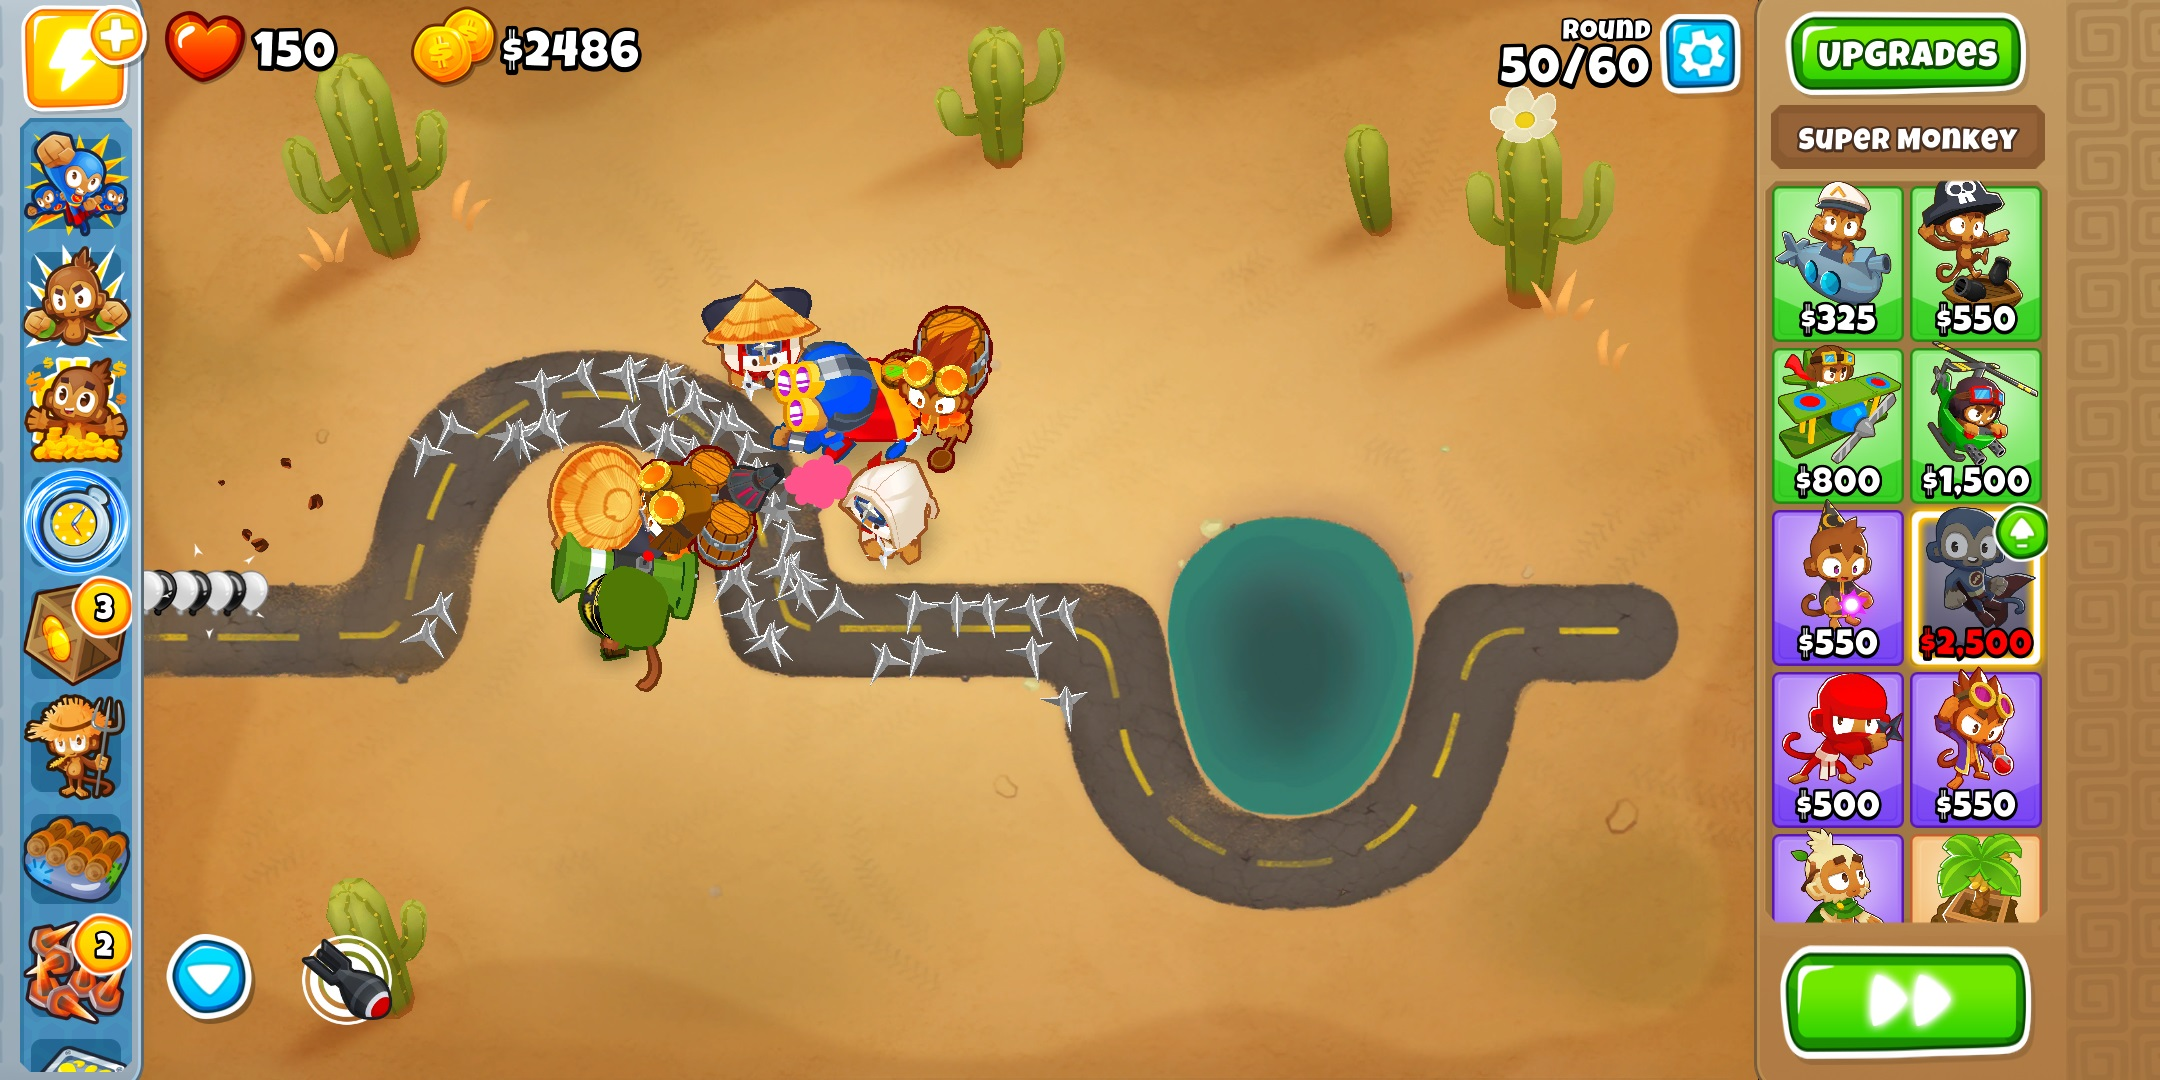 Bloons TD 6 - best non freemium android games